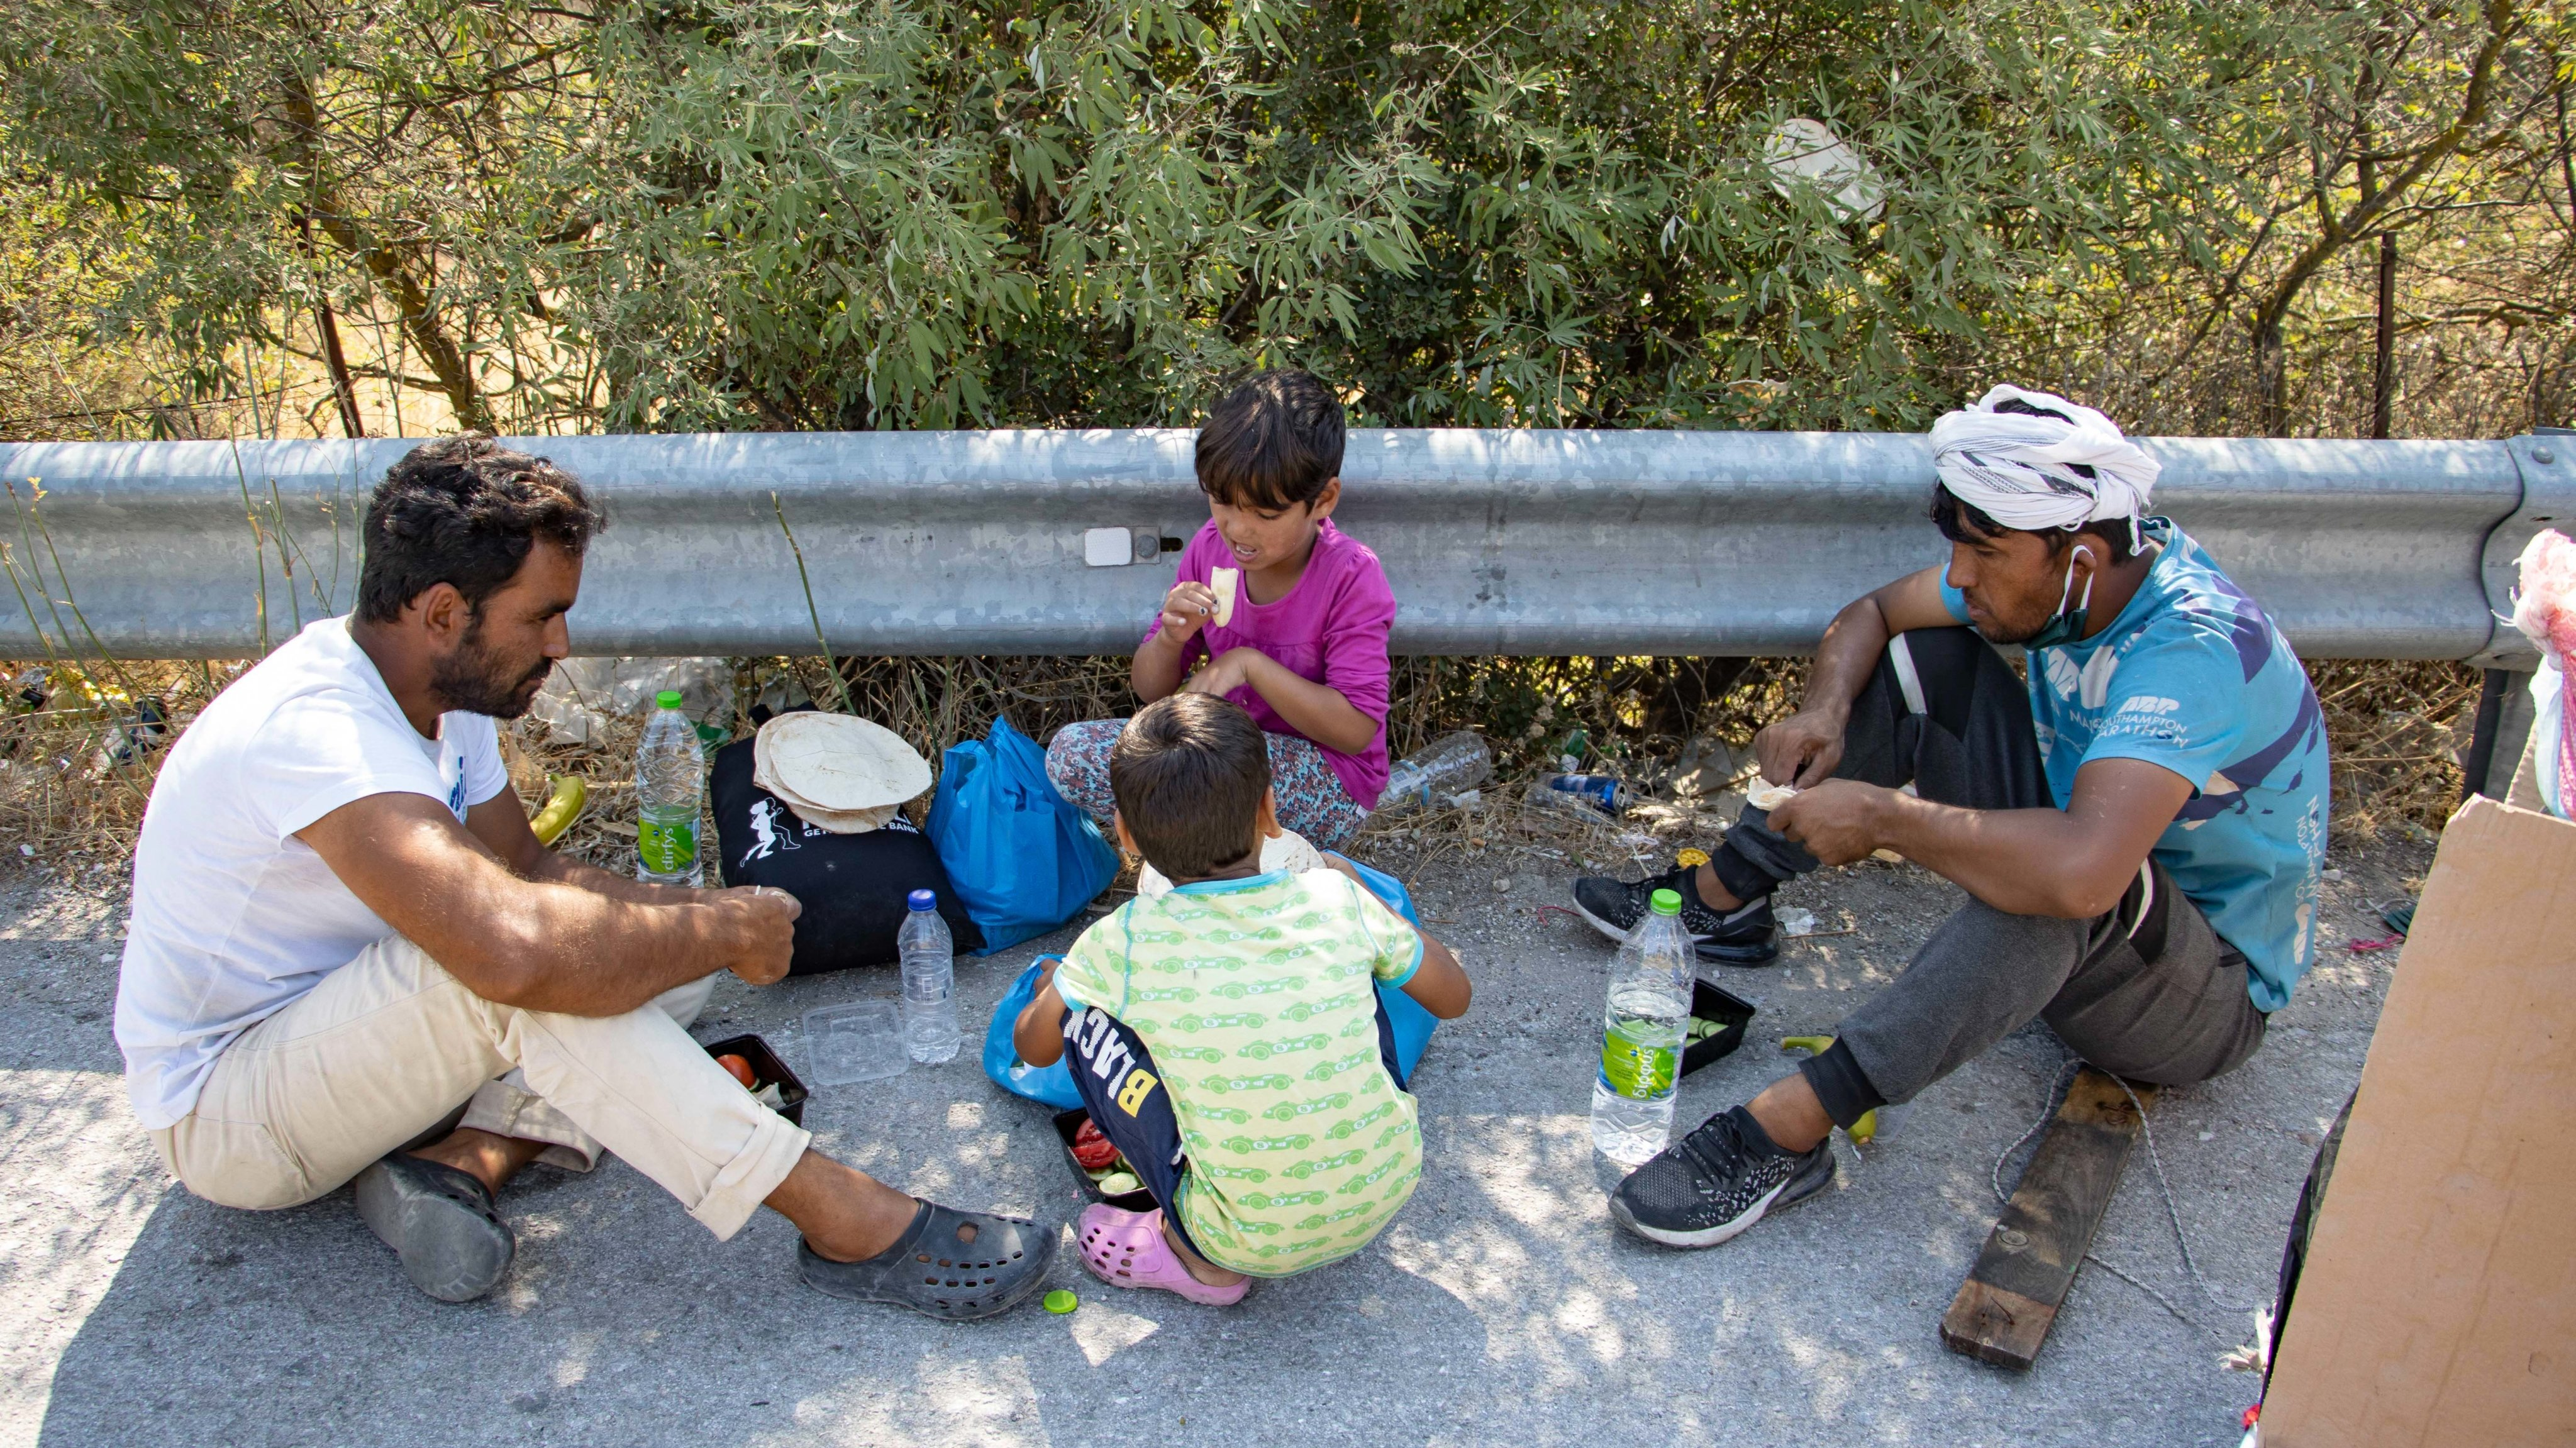 Humanitarian Aid To Refugees After Moria Fire